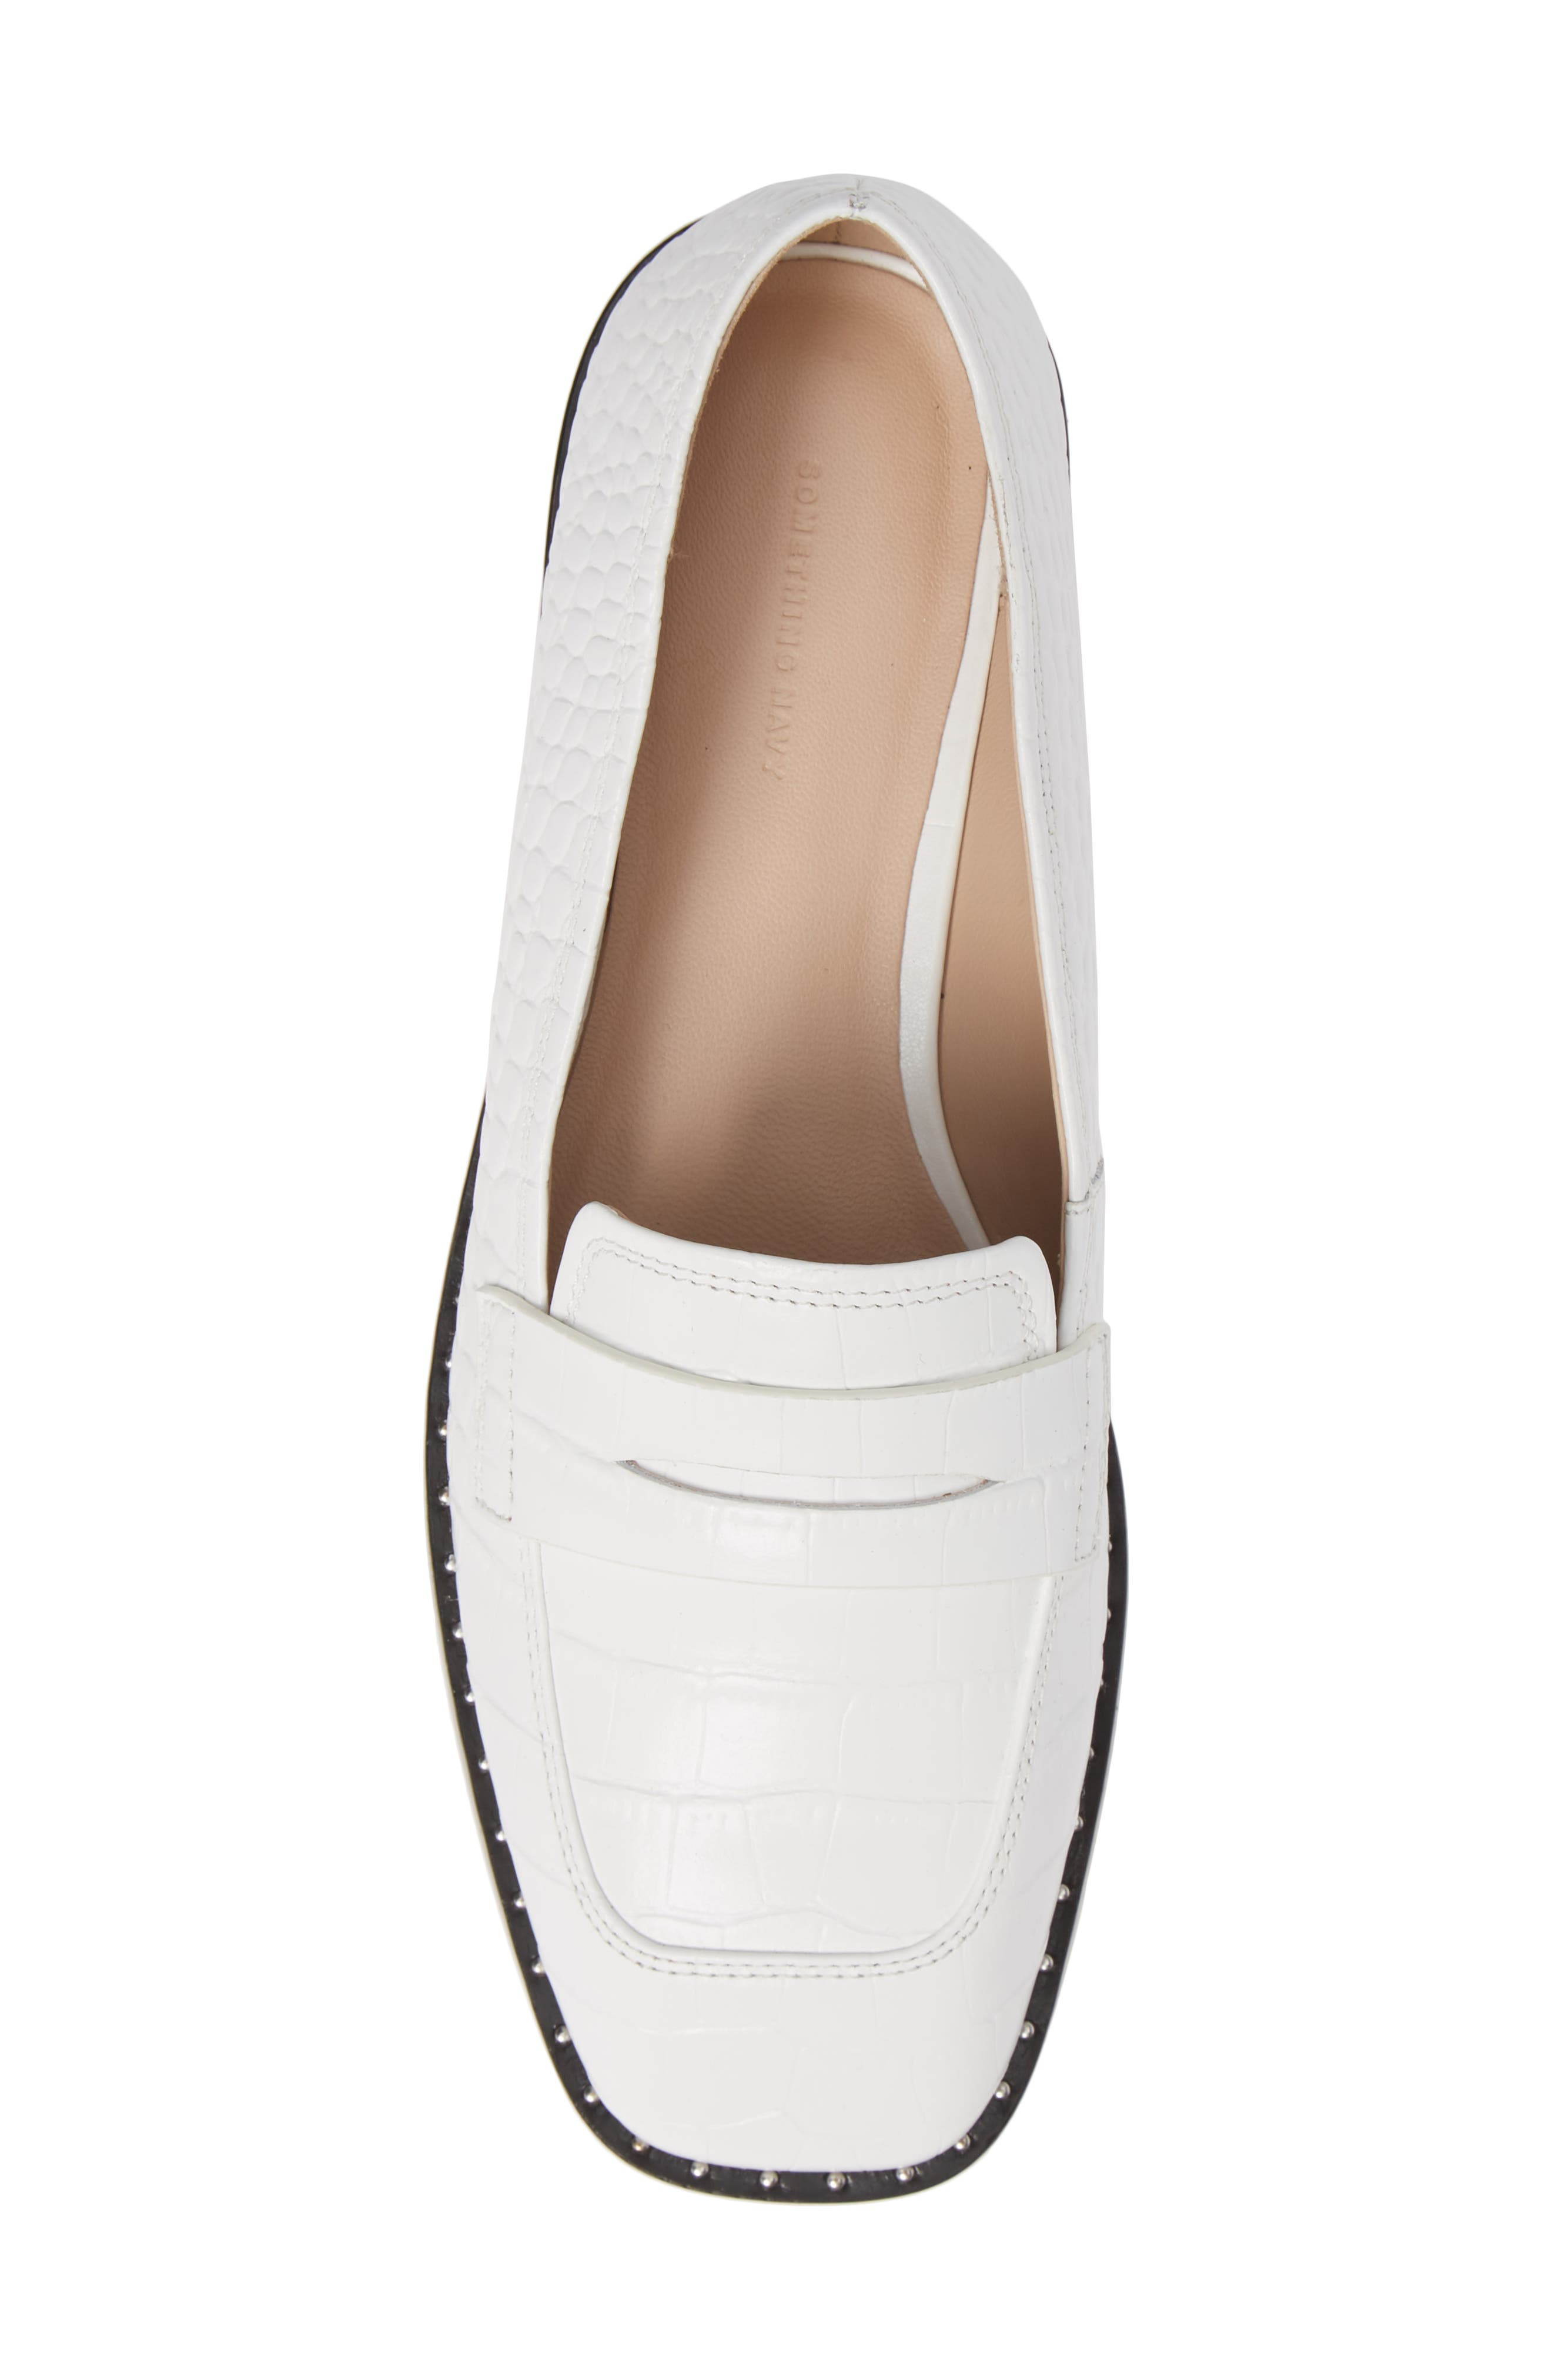 Amado Loafer,                             Alternate thumbnail 5, color,                             WHITE EMBOSSED CROCO LEATHER